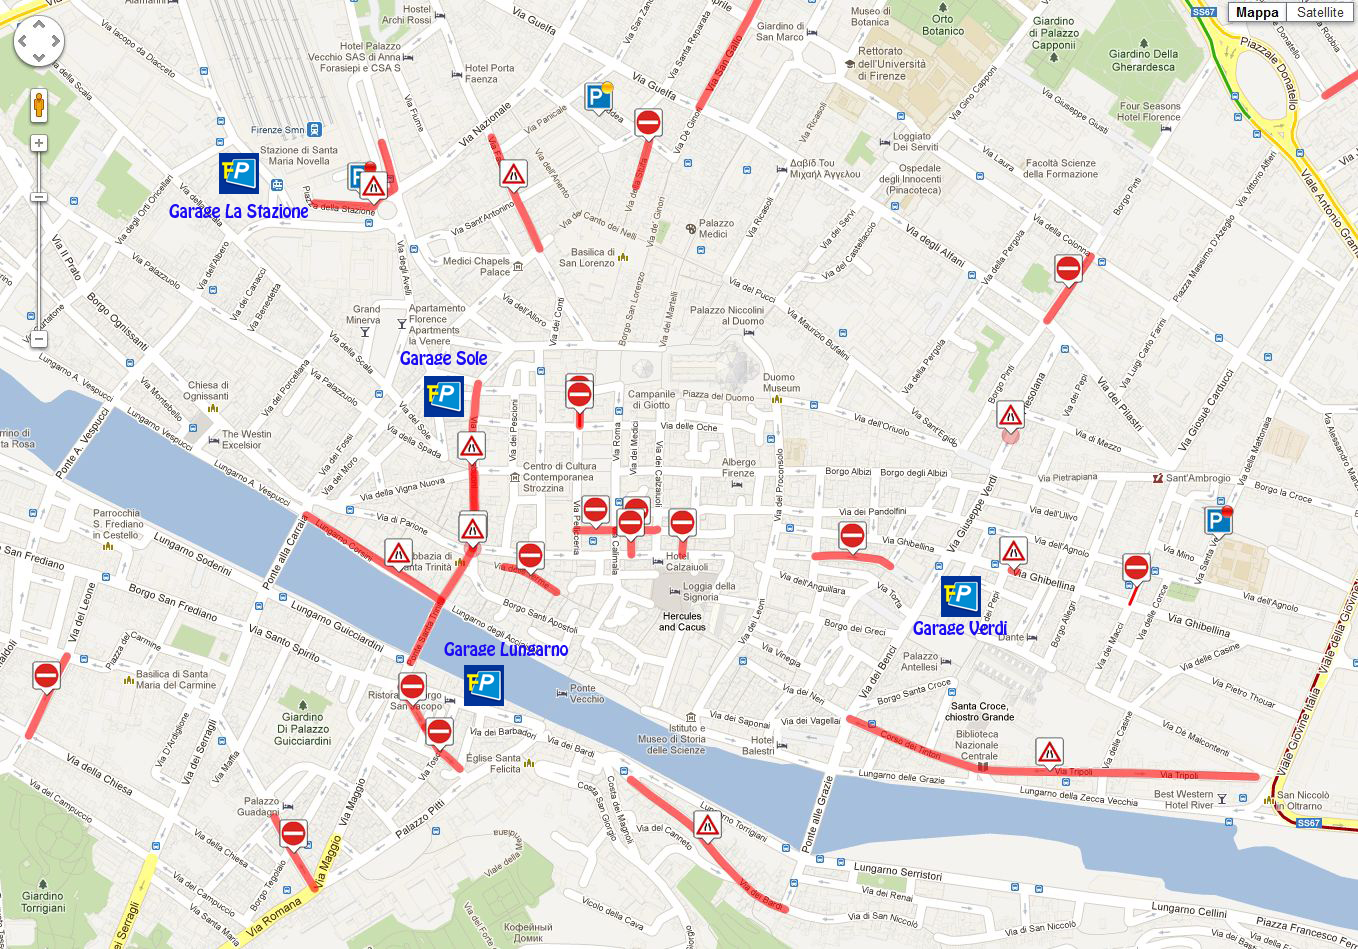 Mappa centro Firenze - Florence Parking